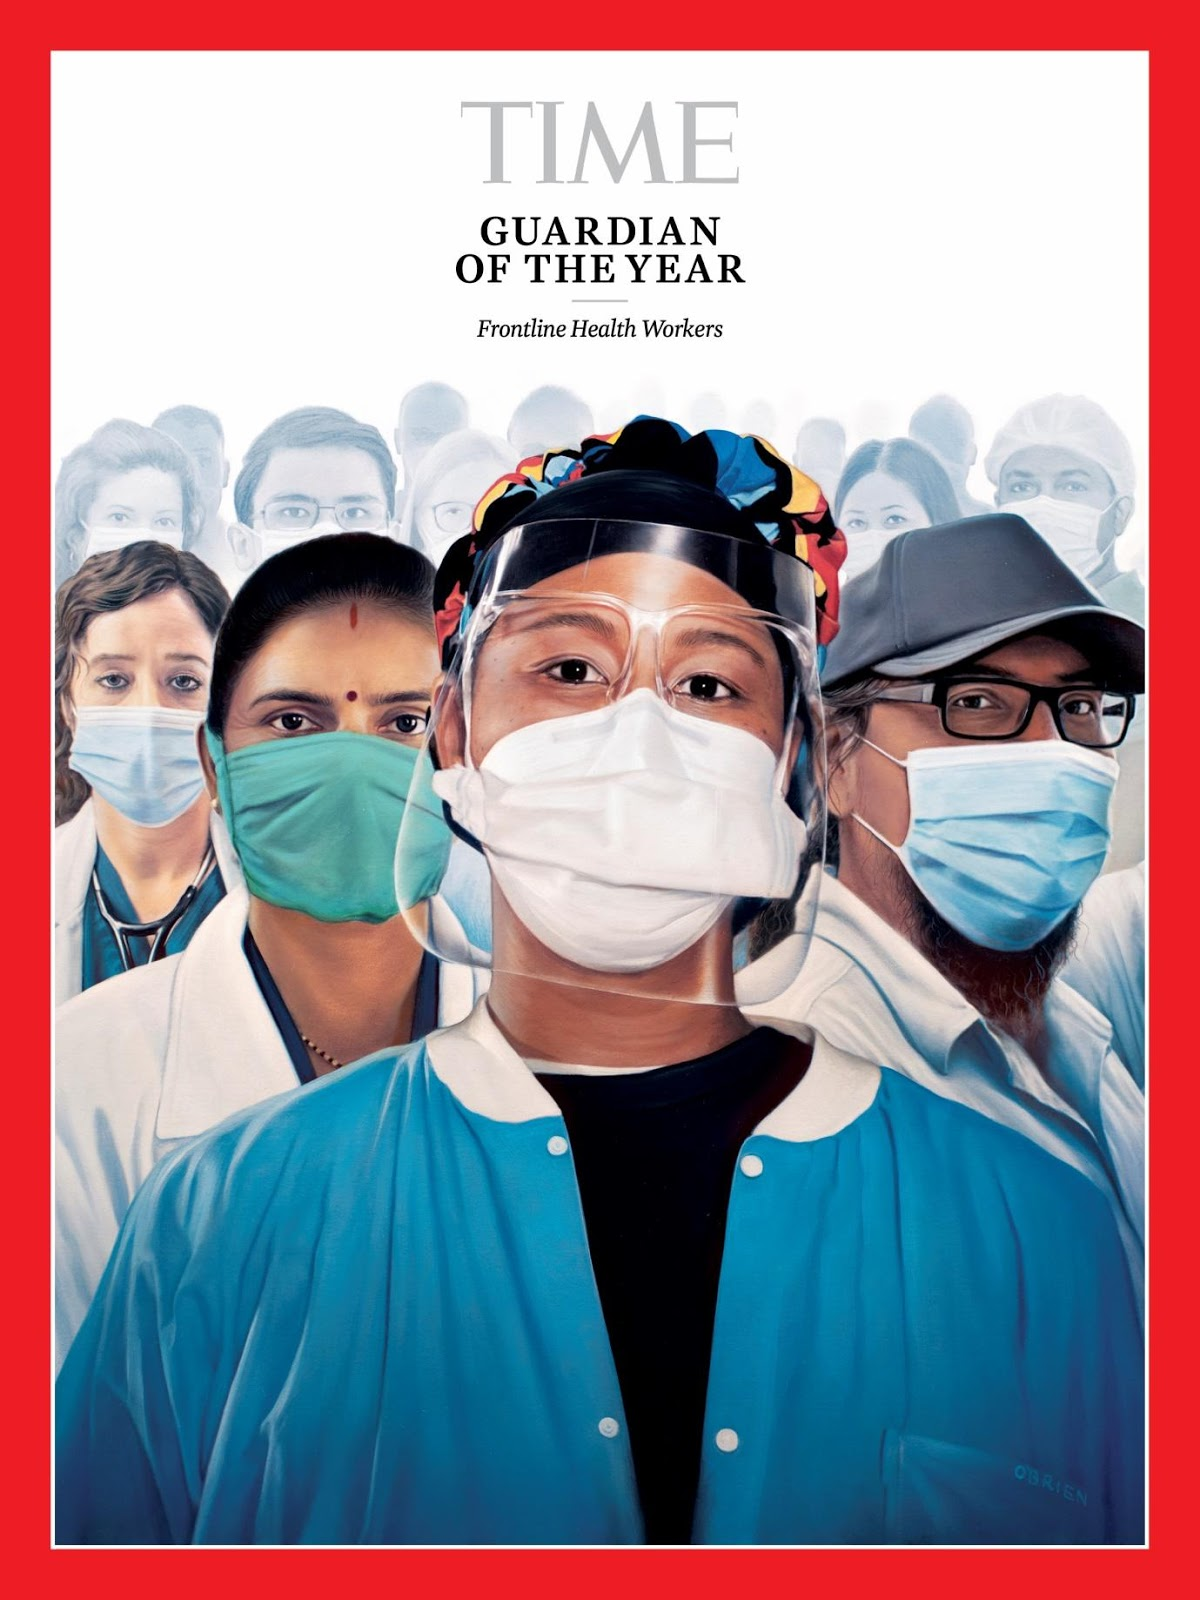 https://api.time.com/wp-content/uploads/2018/12/time-guardians-frontline-healthcare-workers-2020-cover.jpg